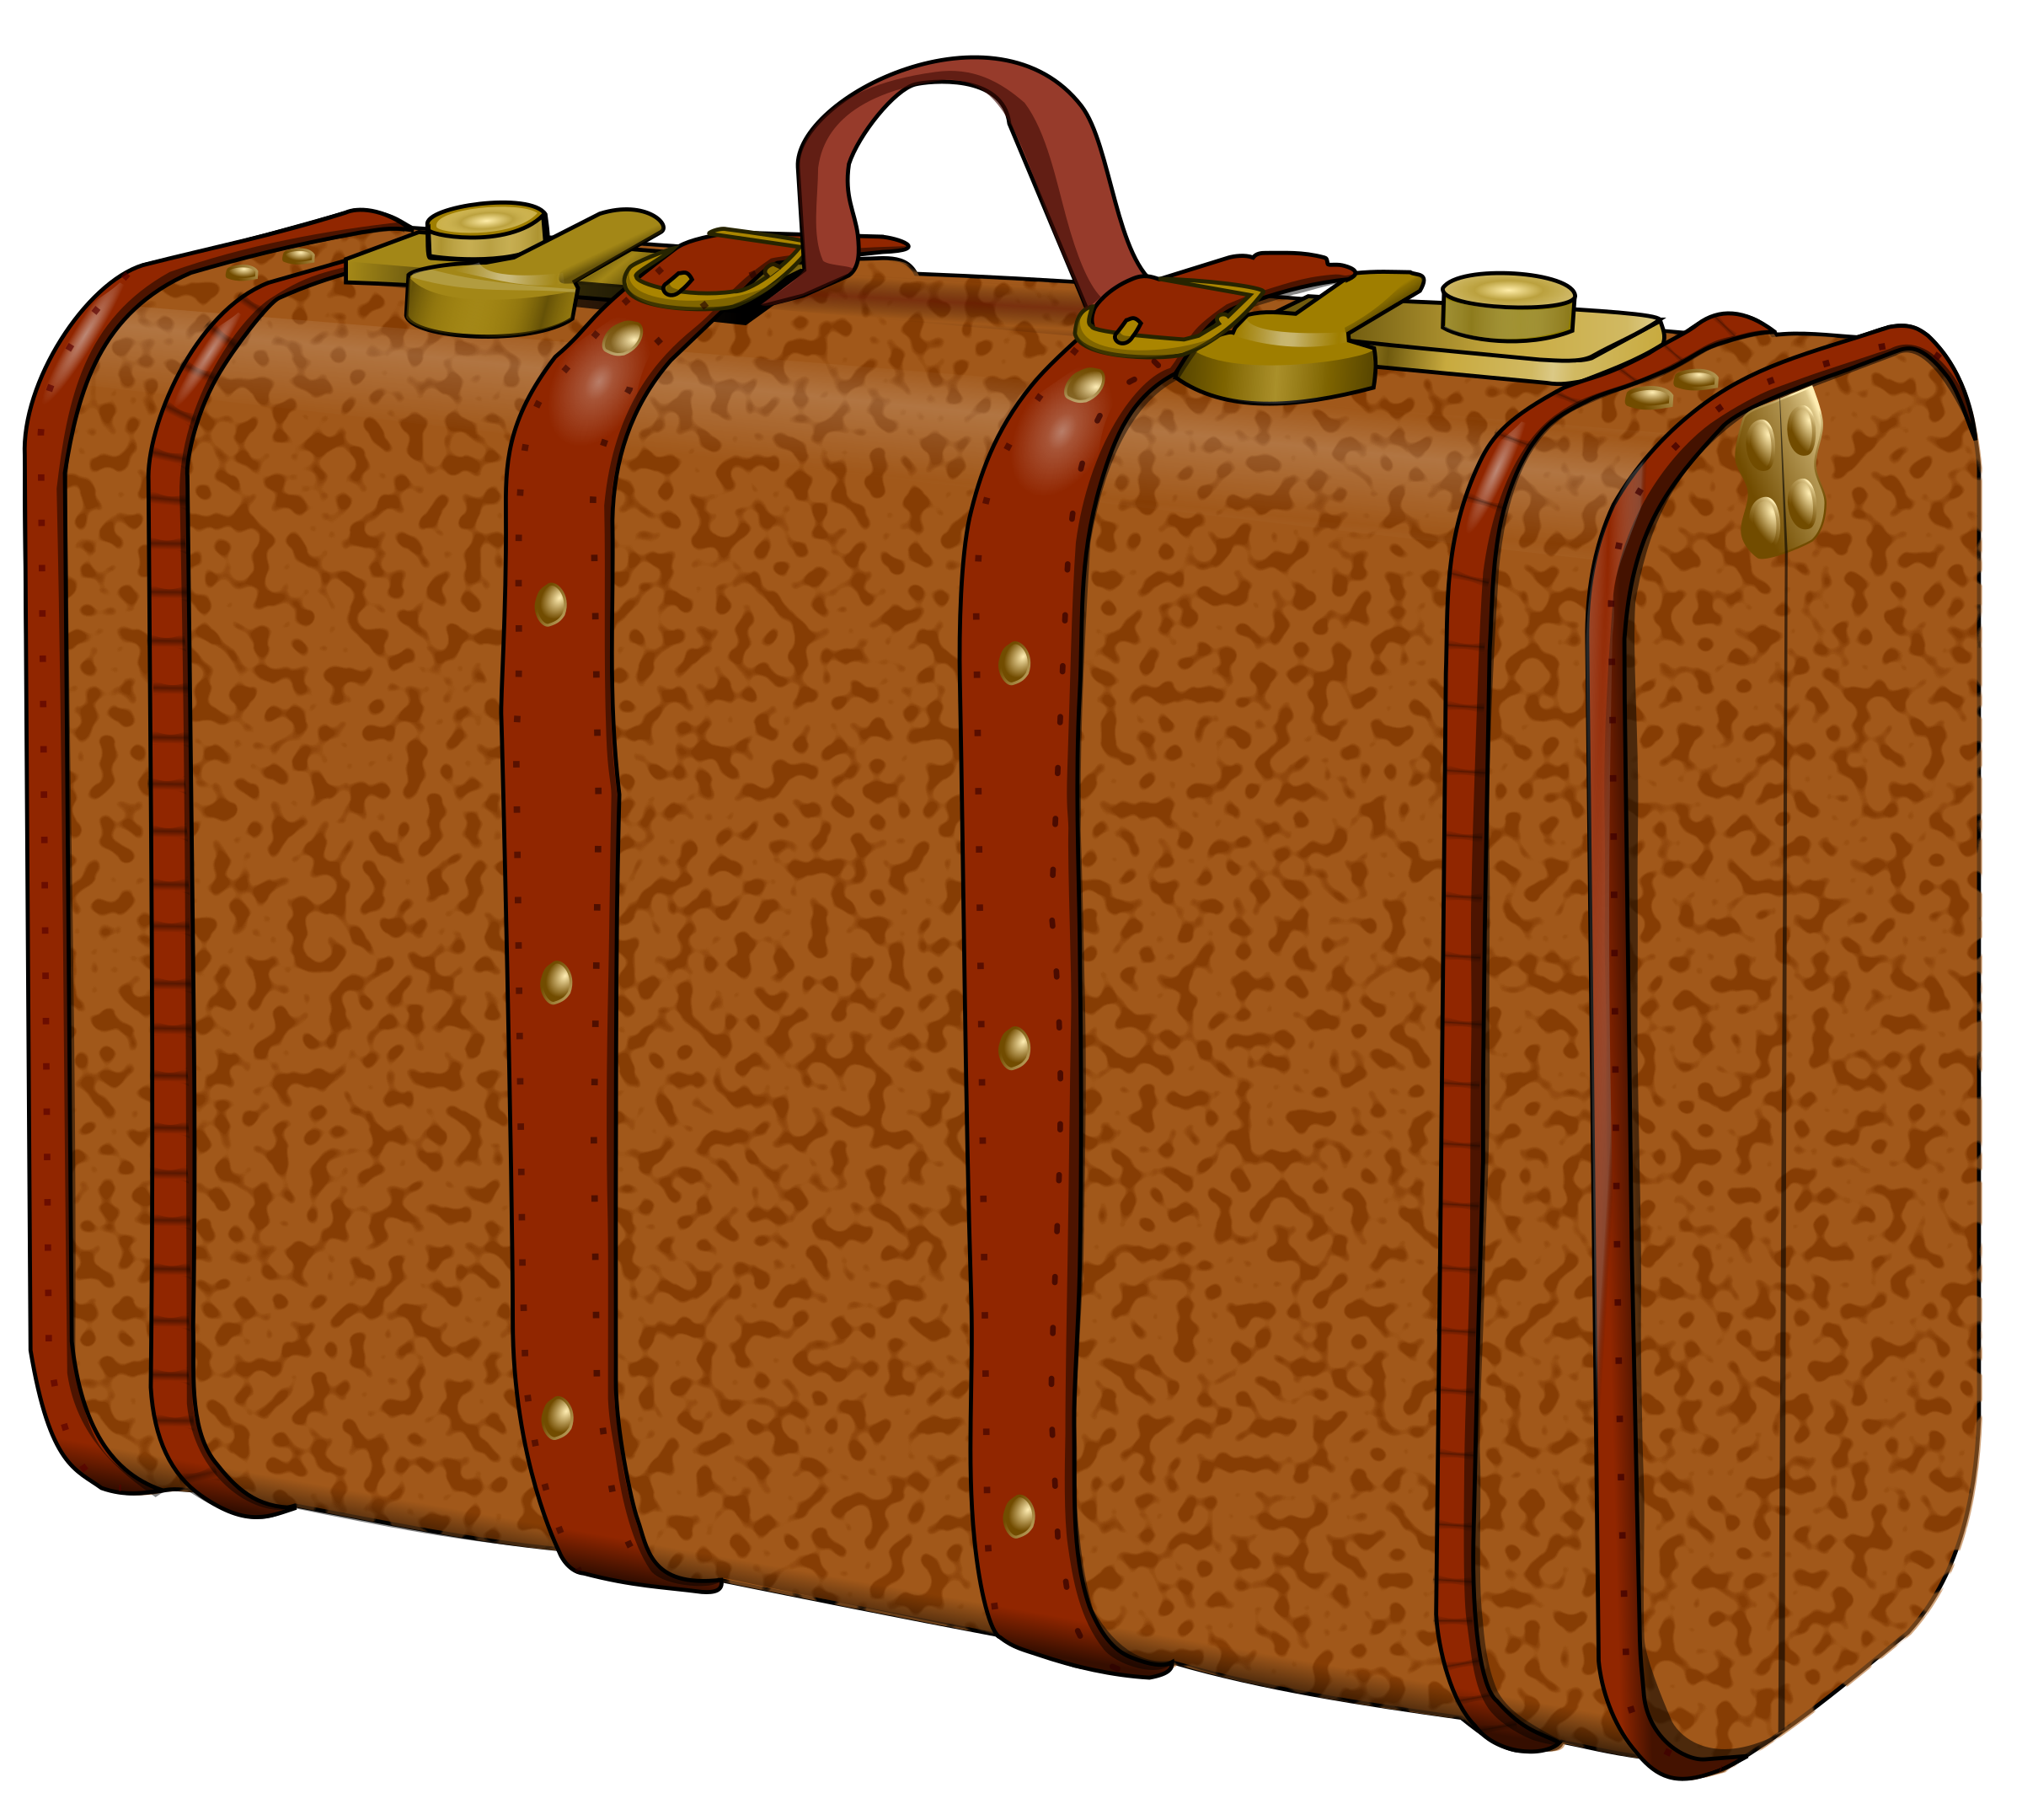 Luggage clipart holiday. Suitcase with stains icons